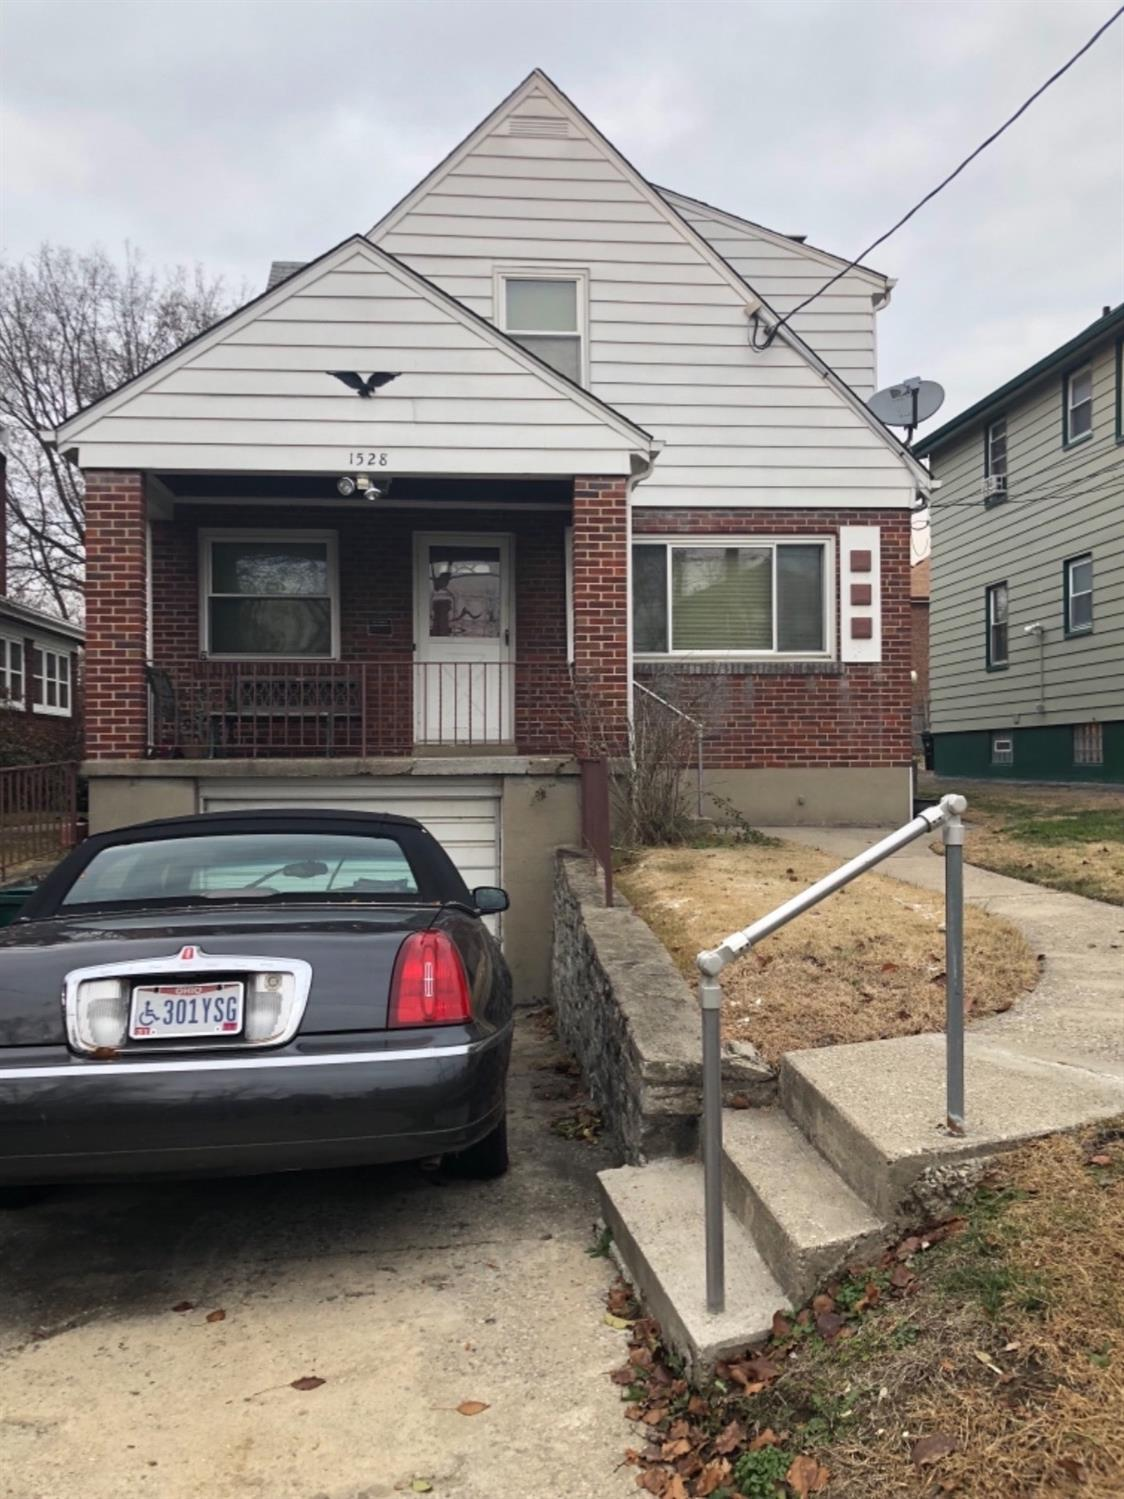 Property for sale at 1528 Joseph Street, Cincinnati,  OH 45237